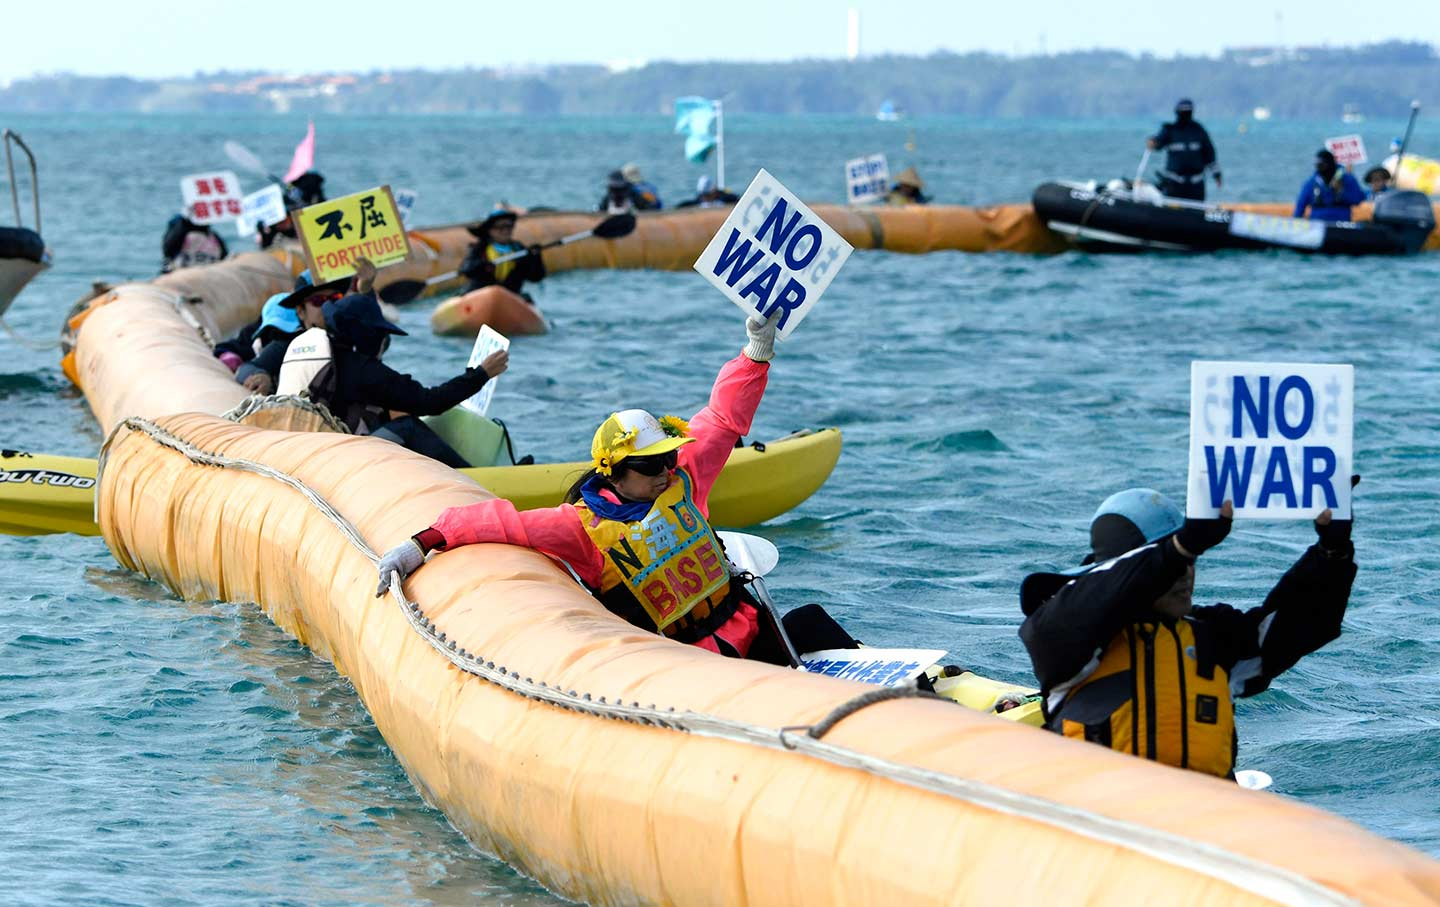 In Their Fight to Stop a New US Military Base, Okinawans